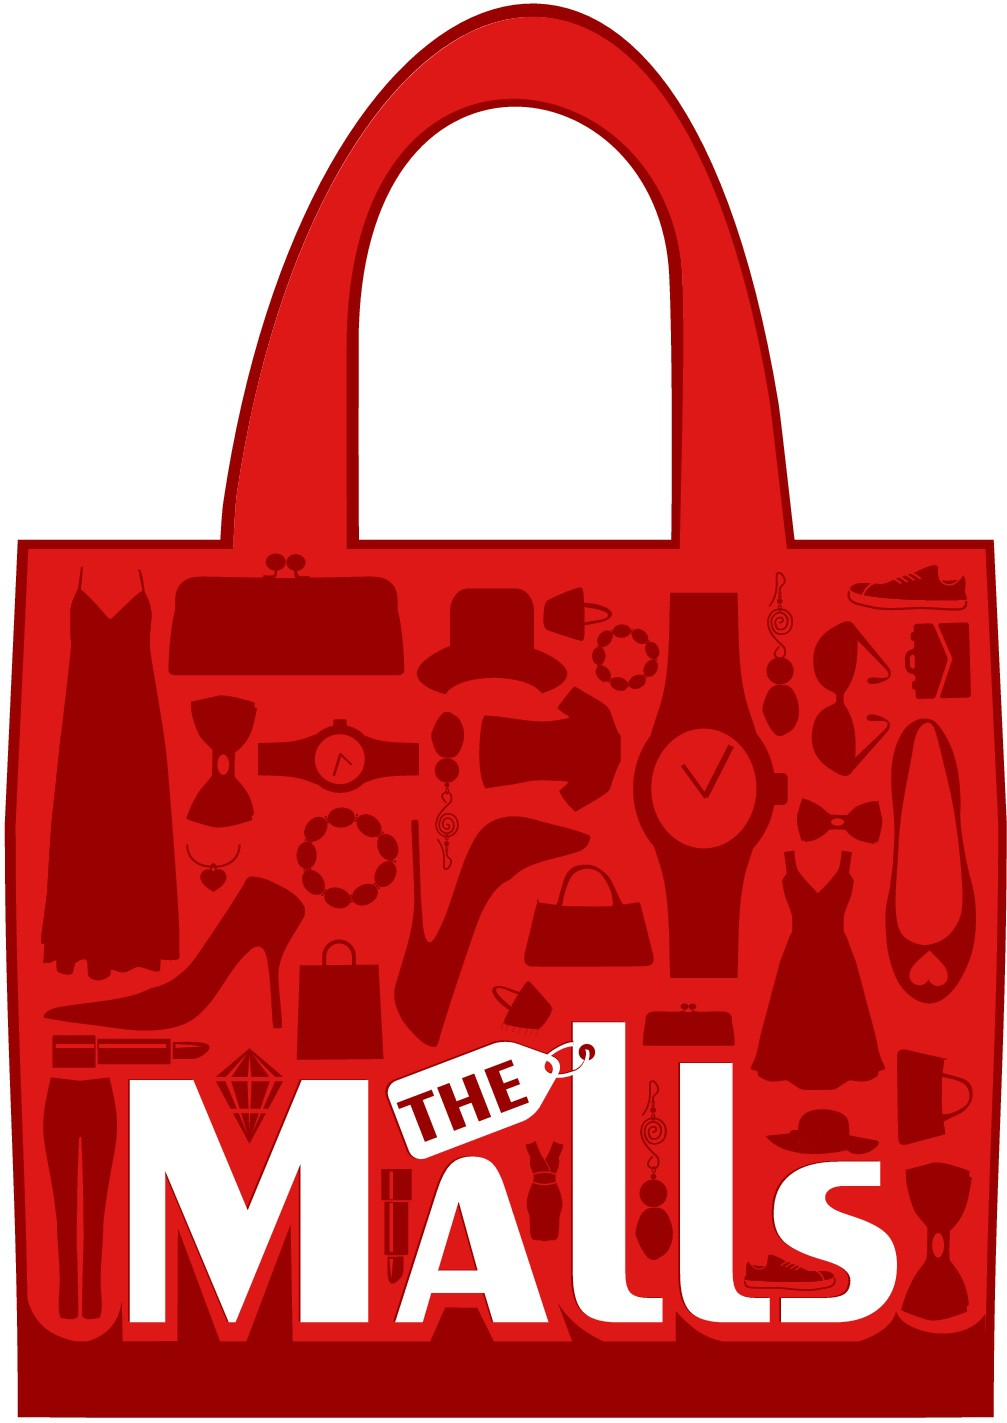 Create a simple and creative logo for our online retail website (THE MALLS) !